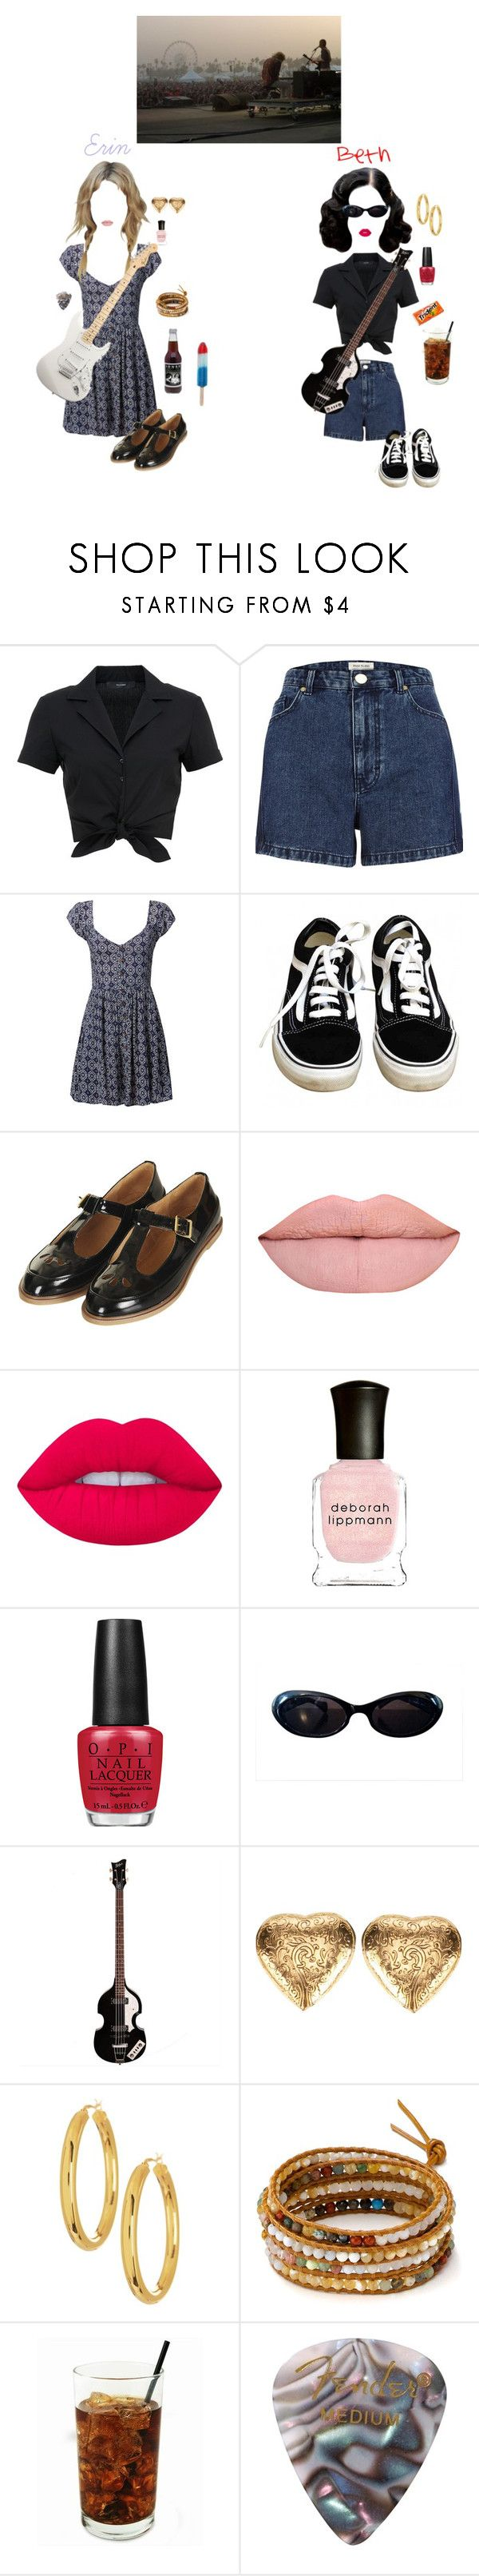 """""""Summer Concert-Erin and Beth"""" by queen-of-rock-n-roll ❤ liked on Polyvore featuring Hallhuber, River Island, Brave Soul, Vans, Topshop, Lime Crime, Deborah Lippmann, OPI, Gucci and Yves Saint Laurent"""